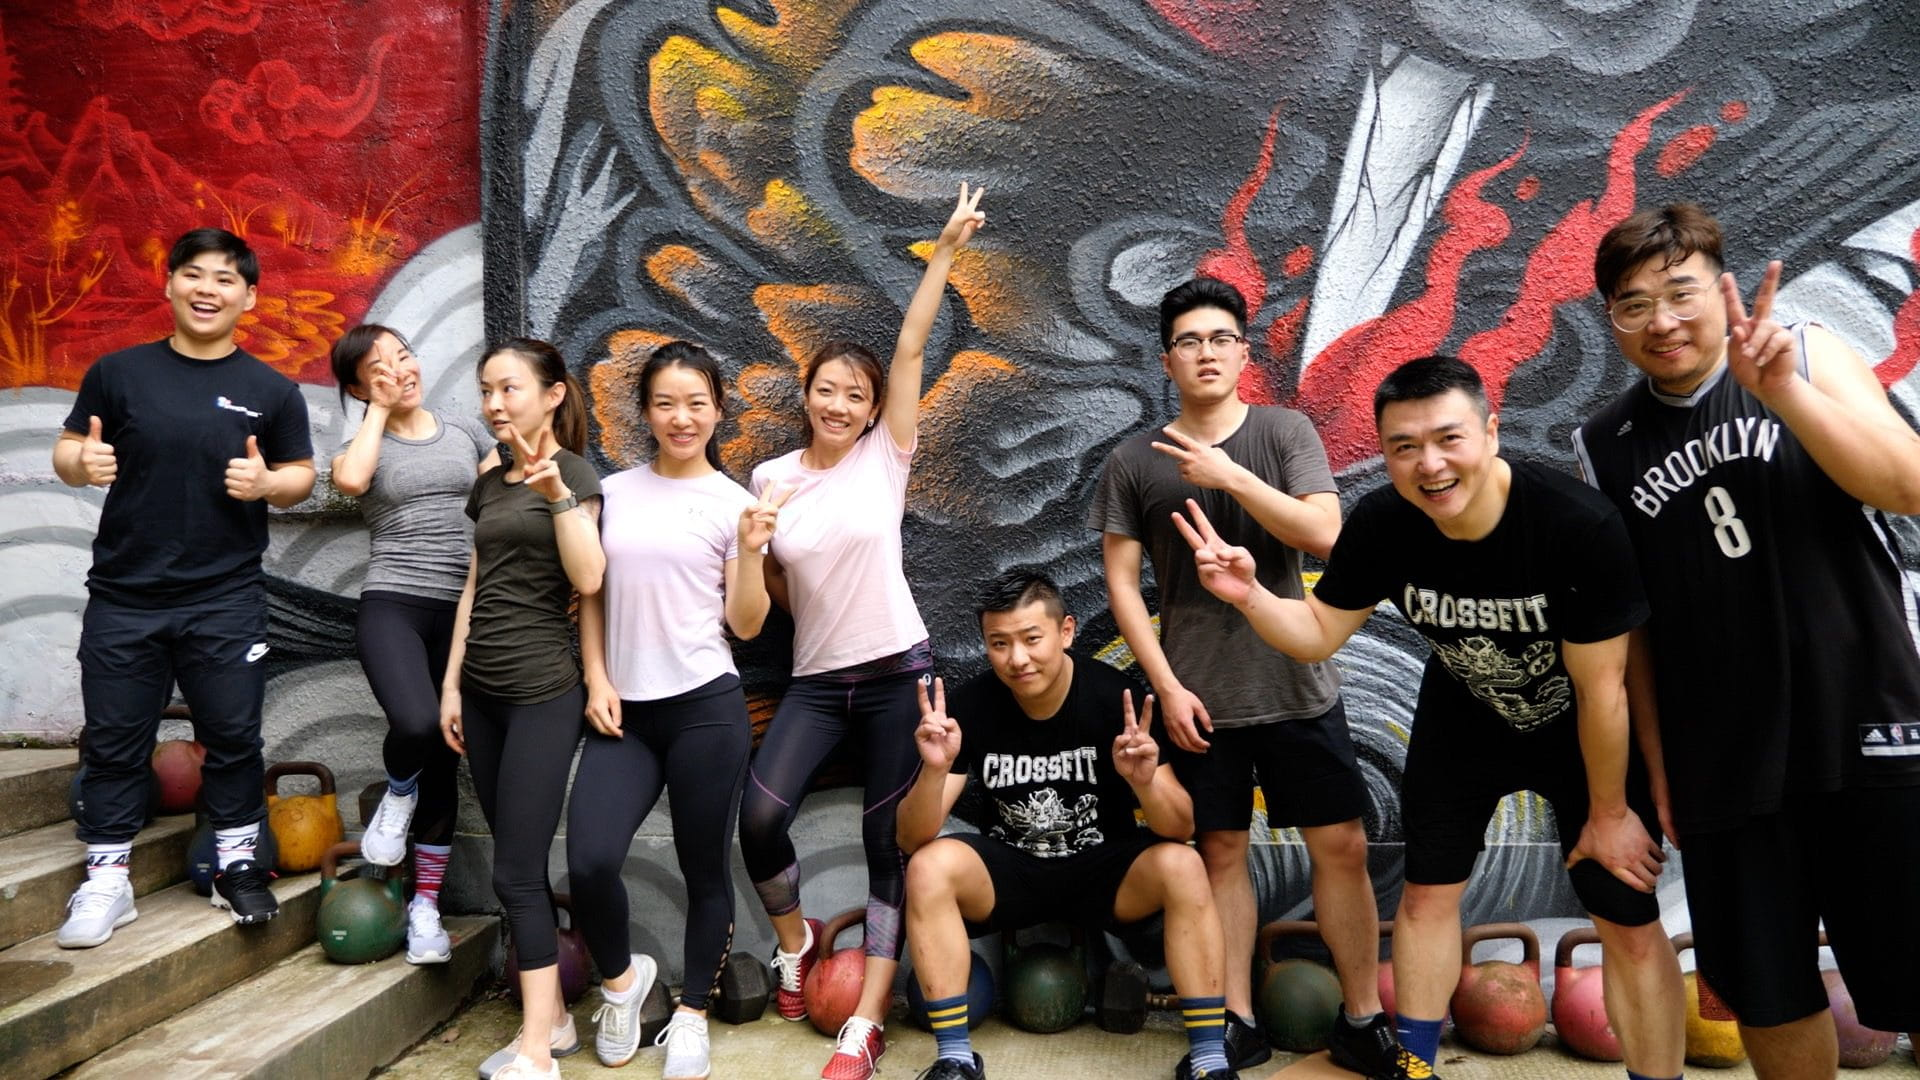 VIDEO – Out of the Box: CrossFit in Shanghai, China